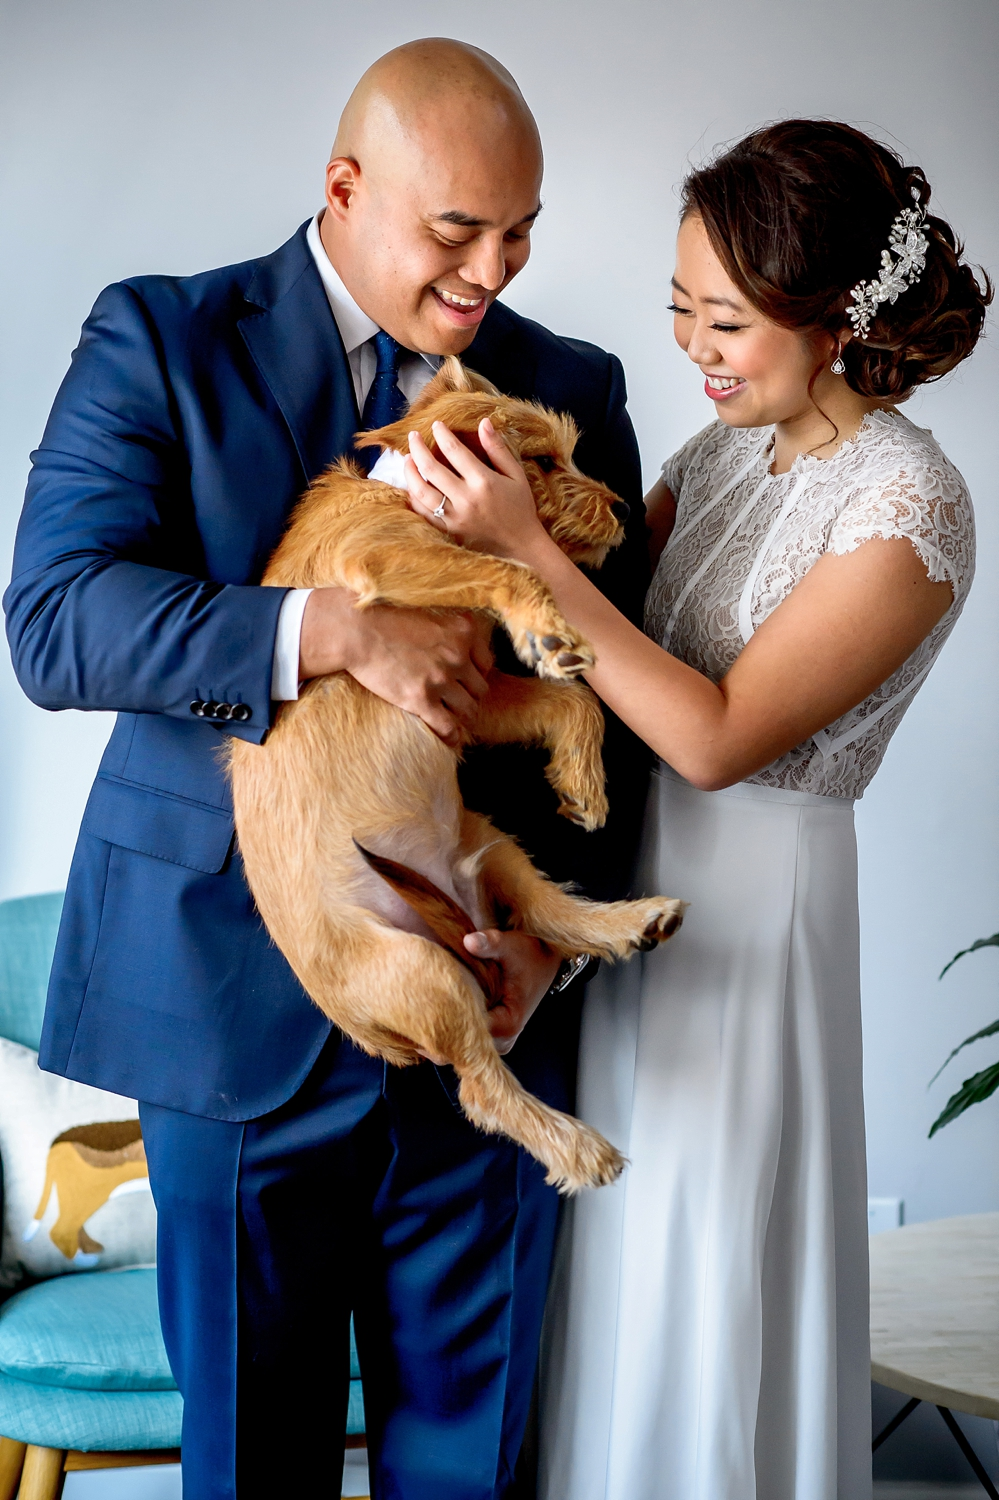 Chinese Filipino married couple on their wedding day petting dog Joshua Dwain I Am Multicultural Podcast